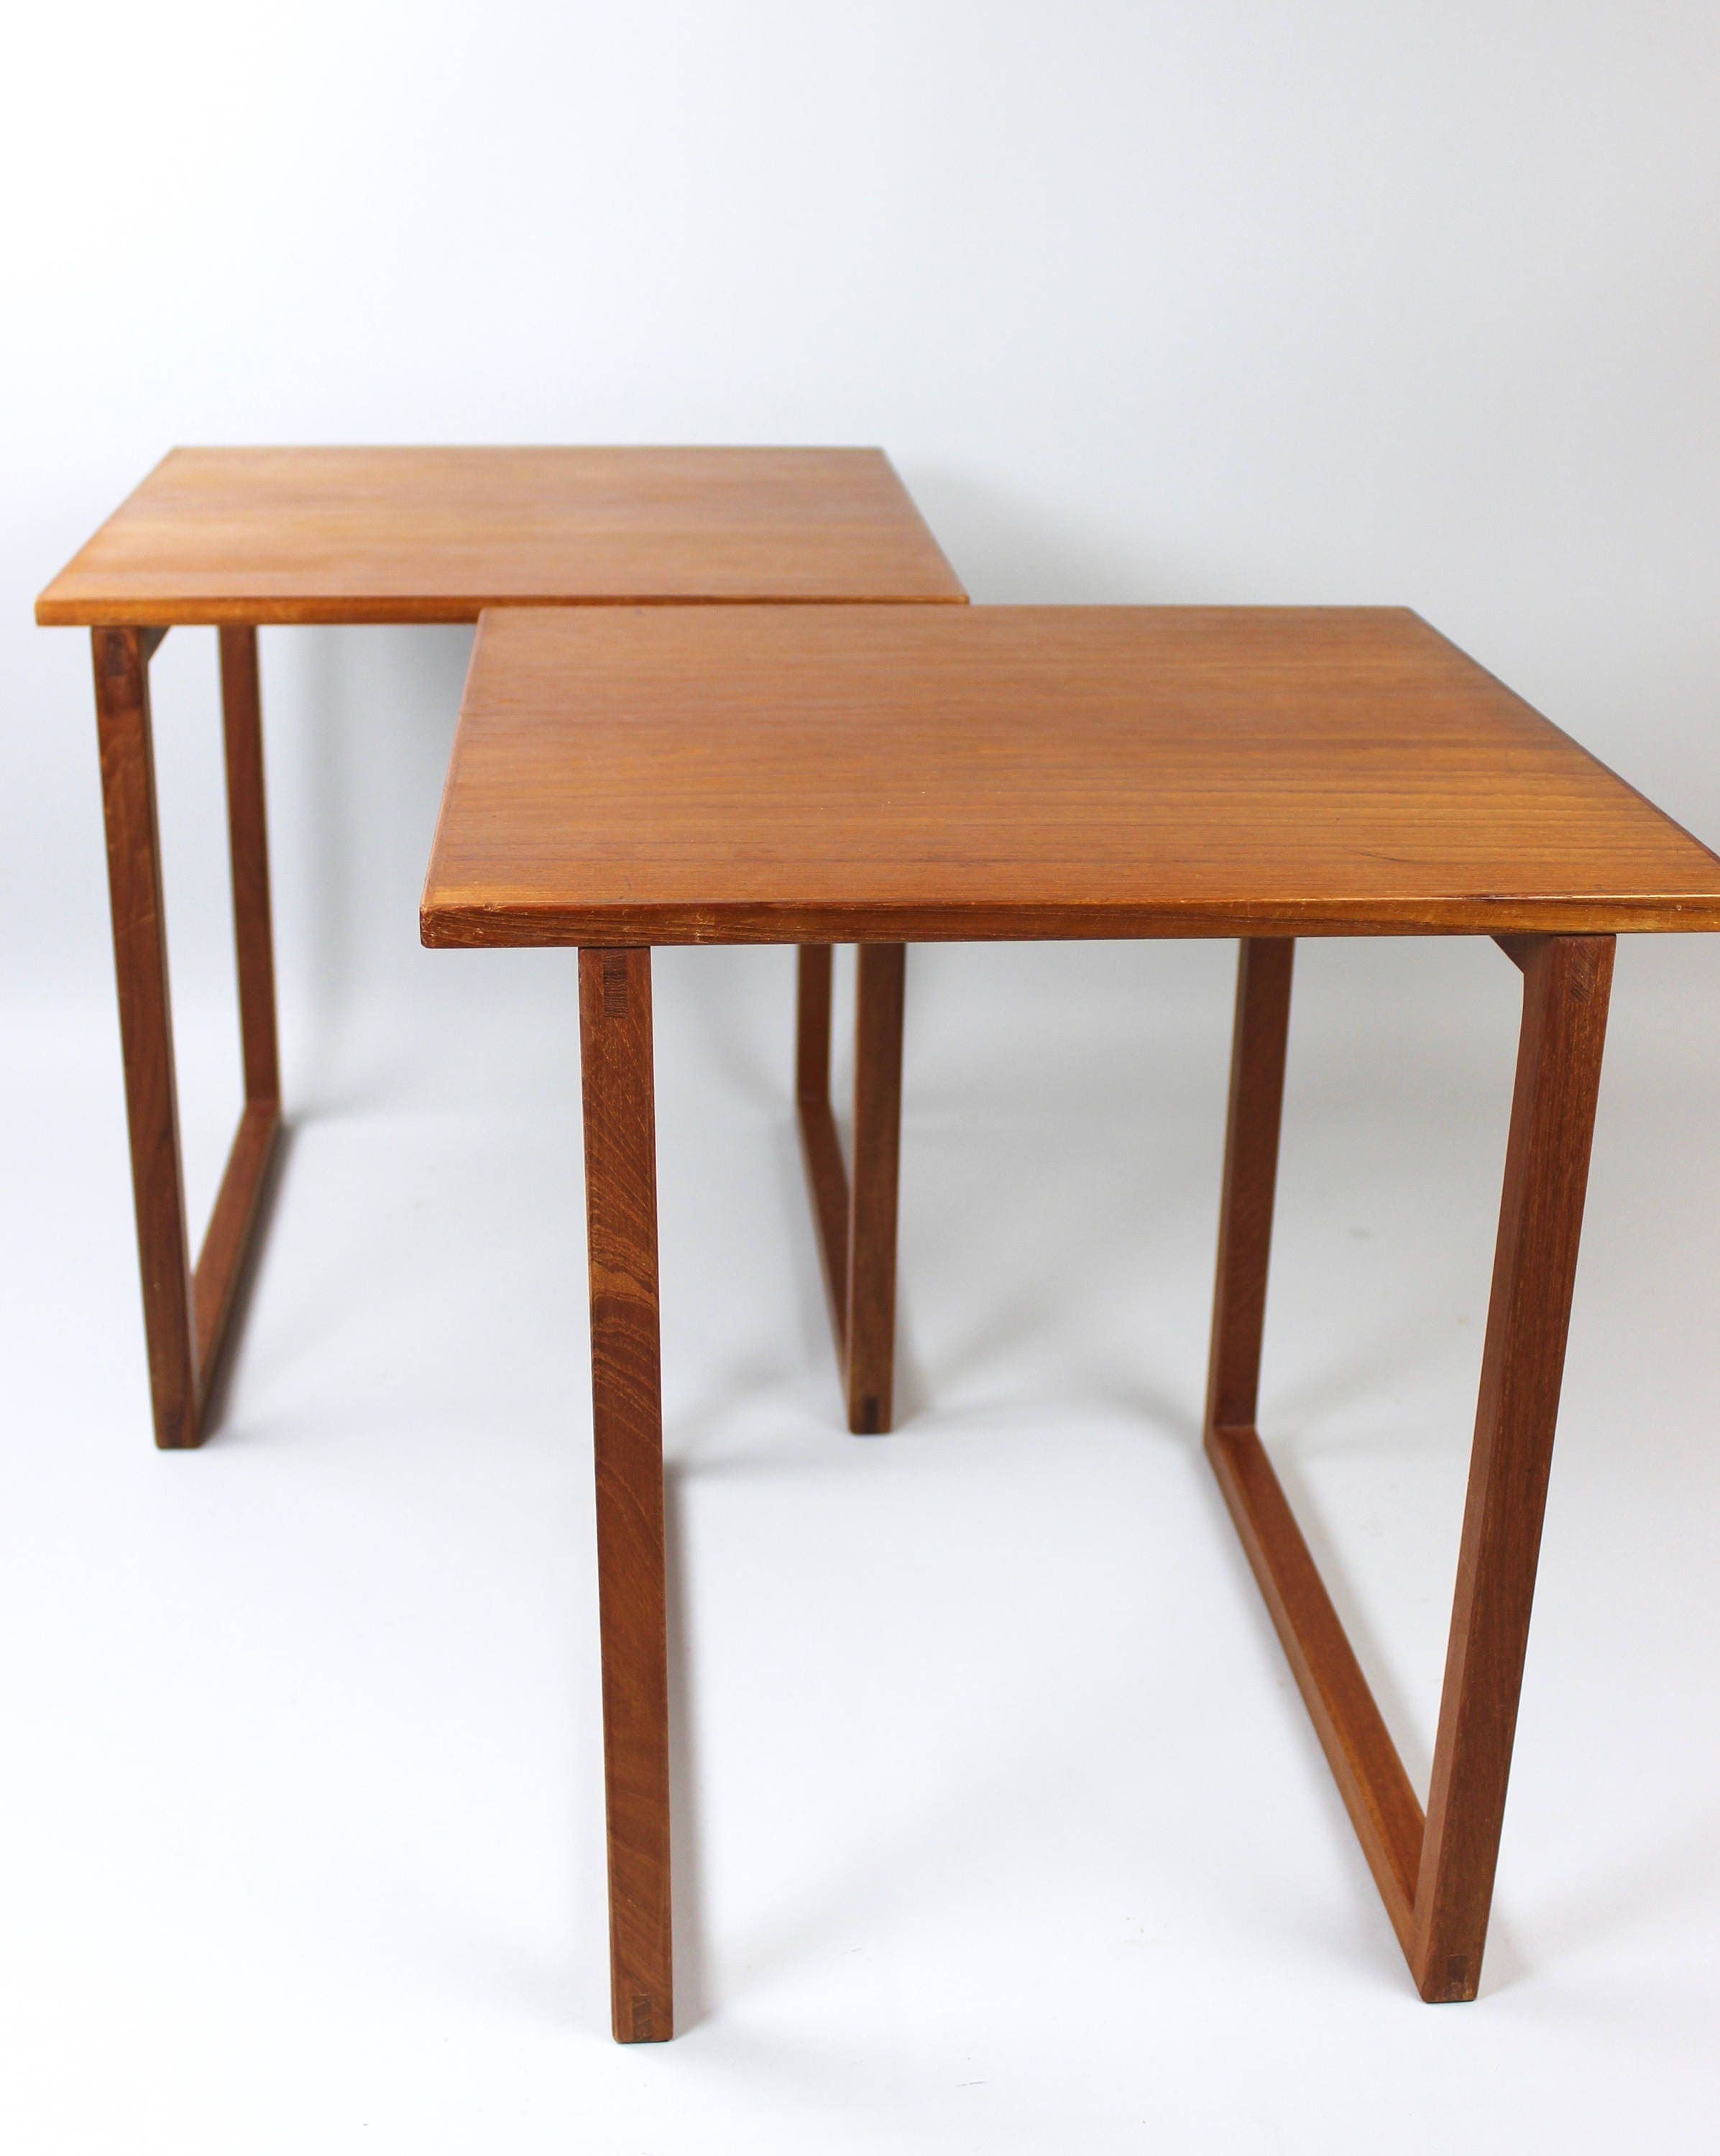 Danish Design Coffee Table Nesting Tables Set Of 2 Cube Teak